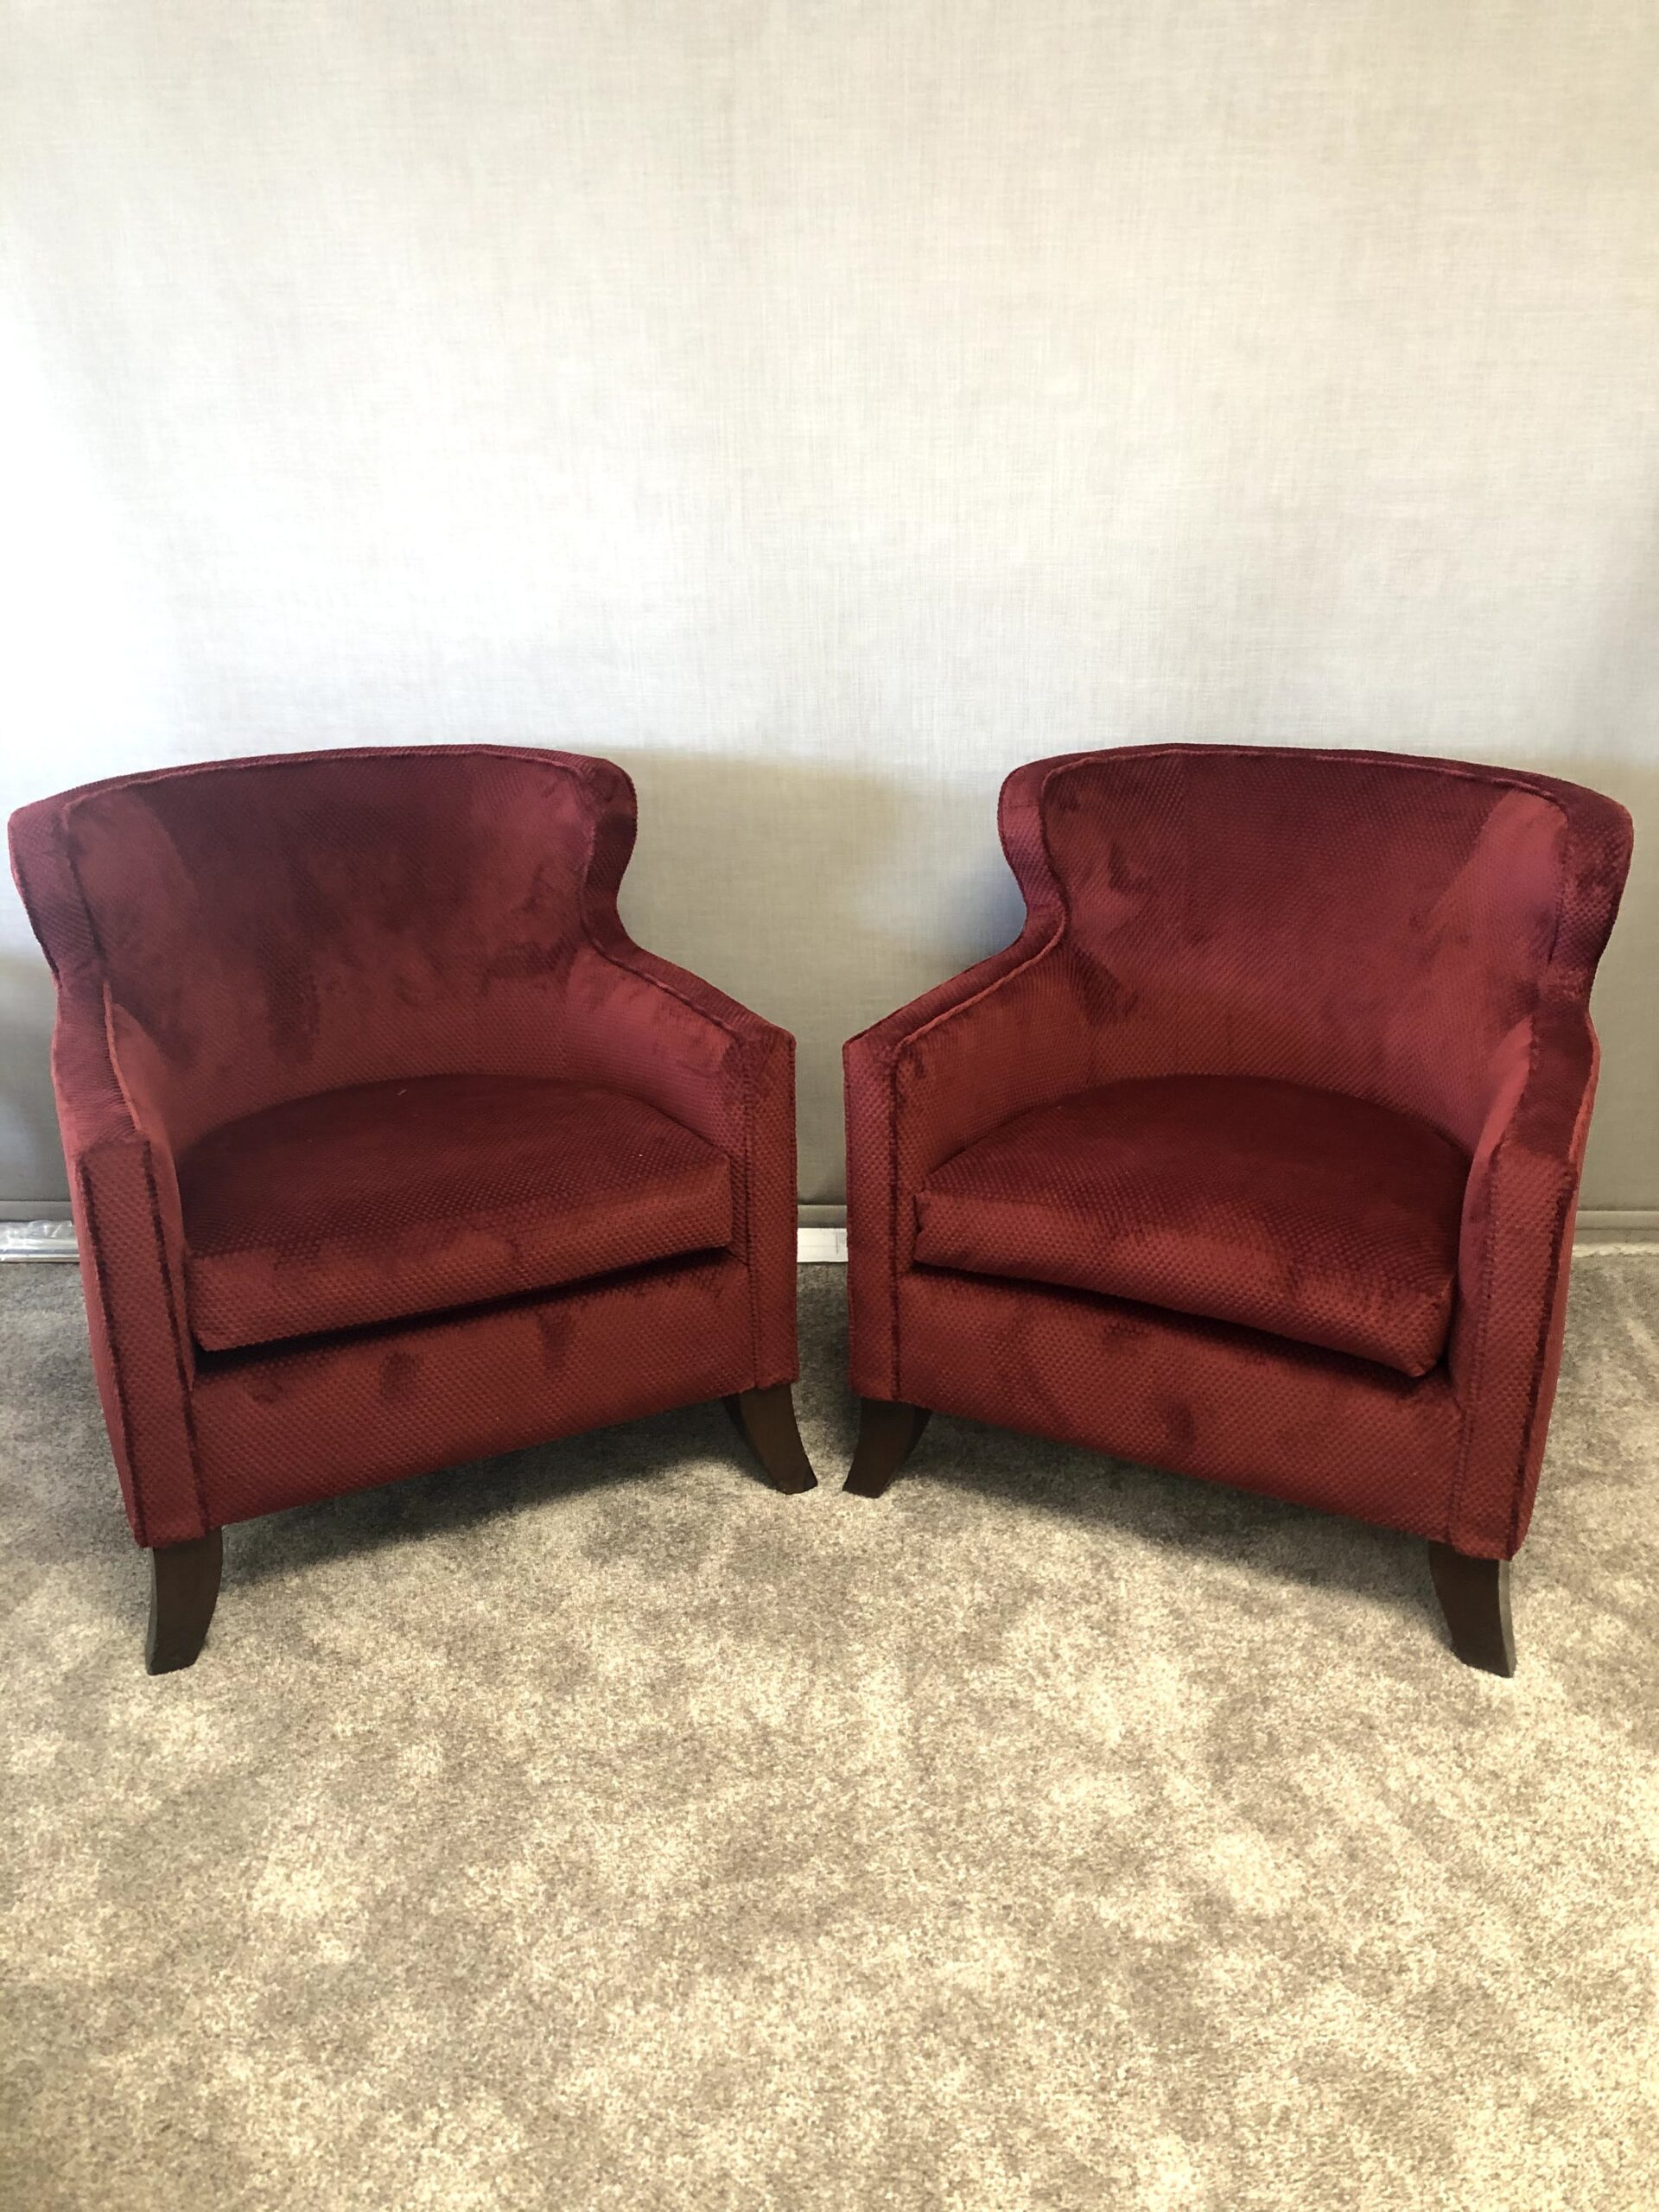 Newly reupholstered, soft dark, red chenille.